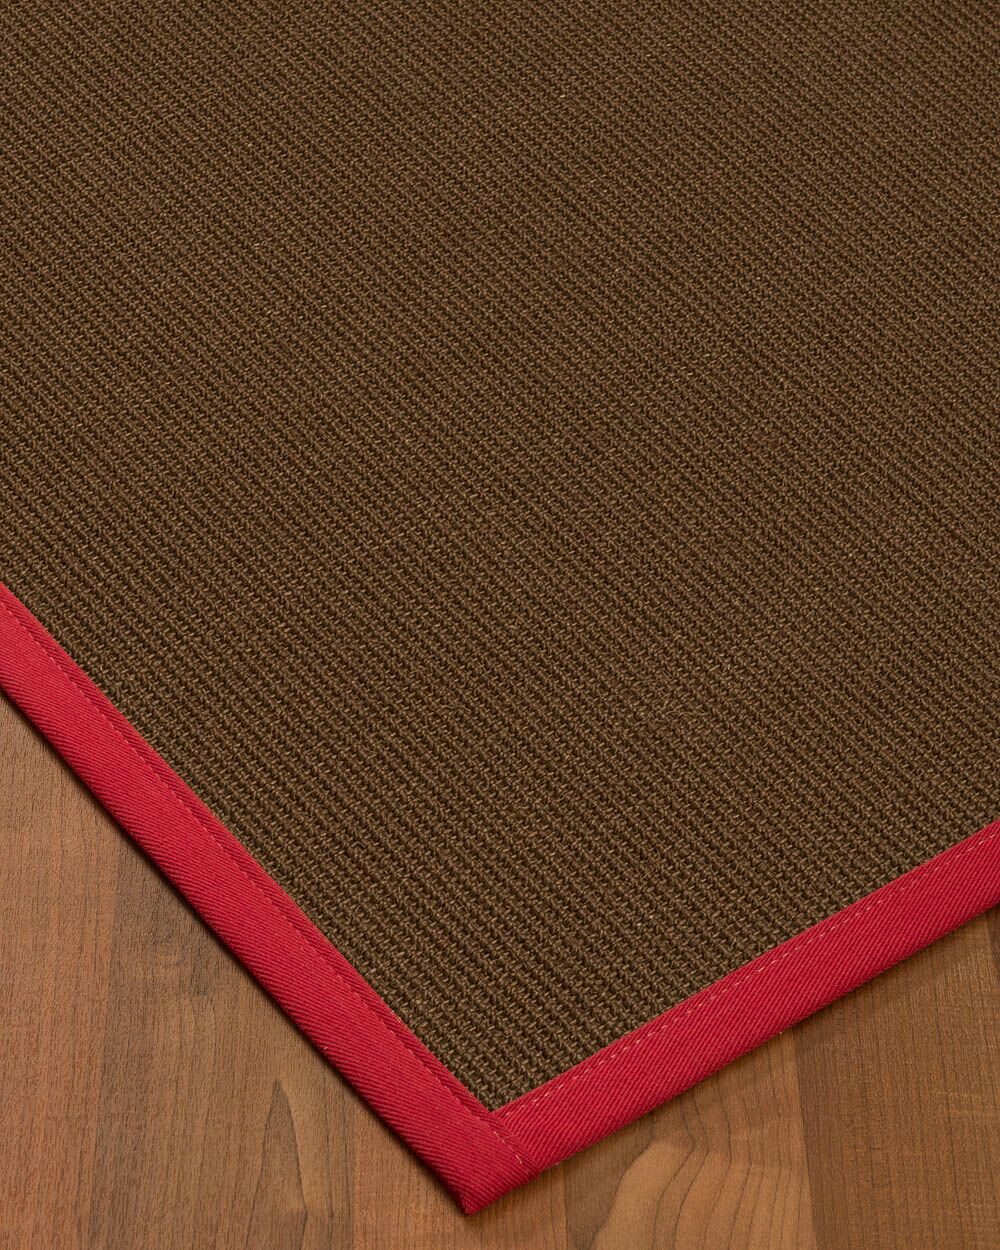 Heider Border Hand-Woven Brown/Red Area Rug Rug Size: Rectangle 4' x 6', Rug Pad Included: Yes